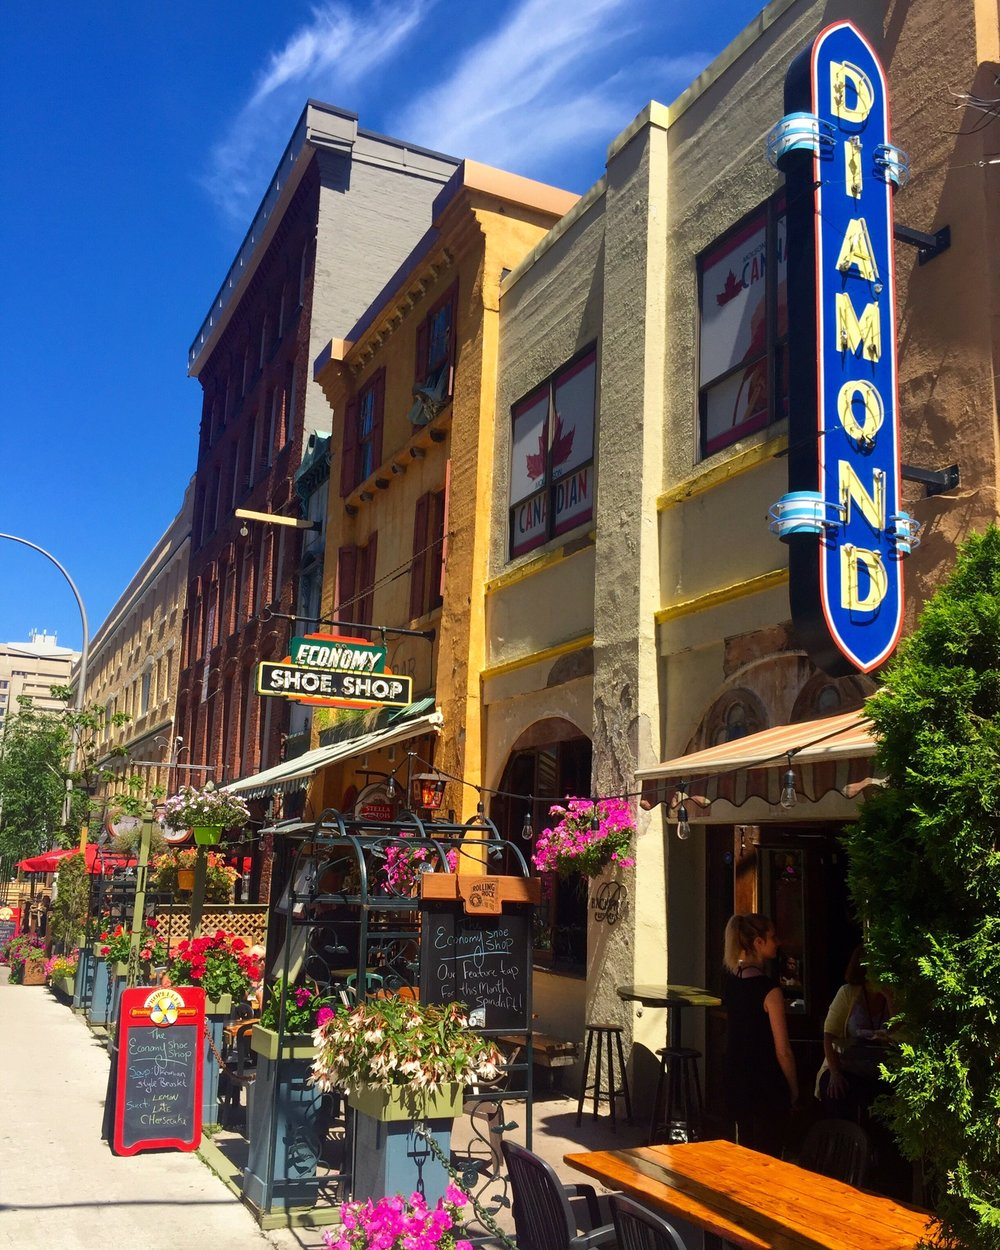 Argyle Street, in the heart of Halifax, Nova Scotia, is lined with cozy pubs, eccentric bistros (i.e. the iconic  Economy Shoe Shop , a cafe and bar that takes its name from a salvaged neon sign that hangs from the side of the building) and plenty of options for dining al fresco on a gorgeous summer day.